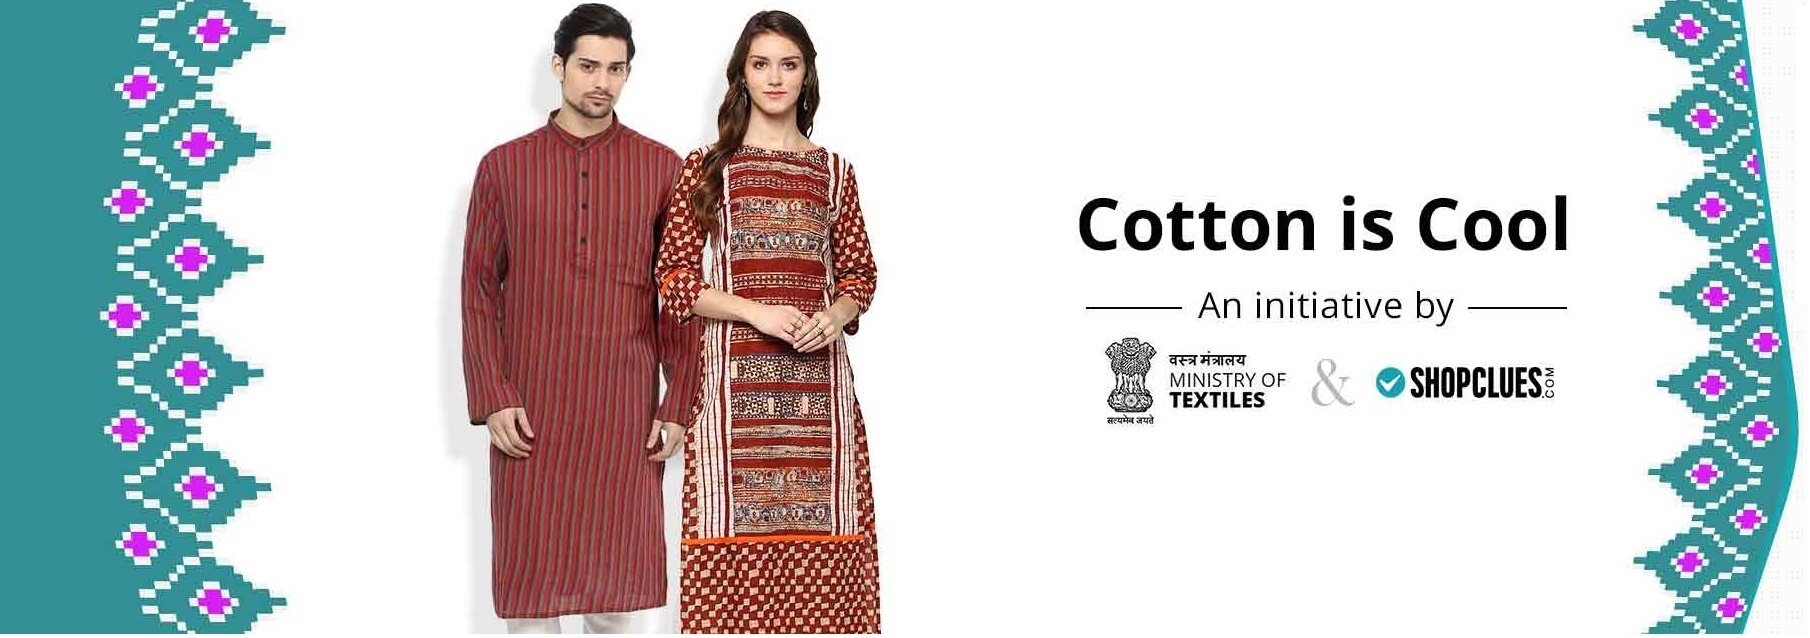 ShopClues and Ministry of Textiles partner to promote Cotton Industry in India